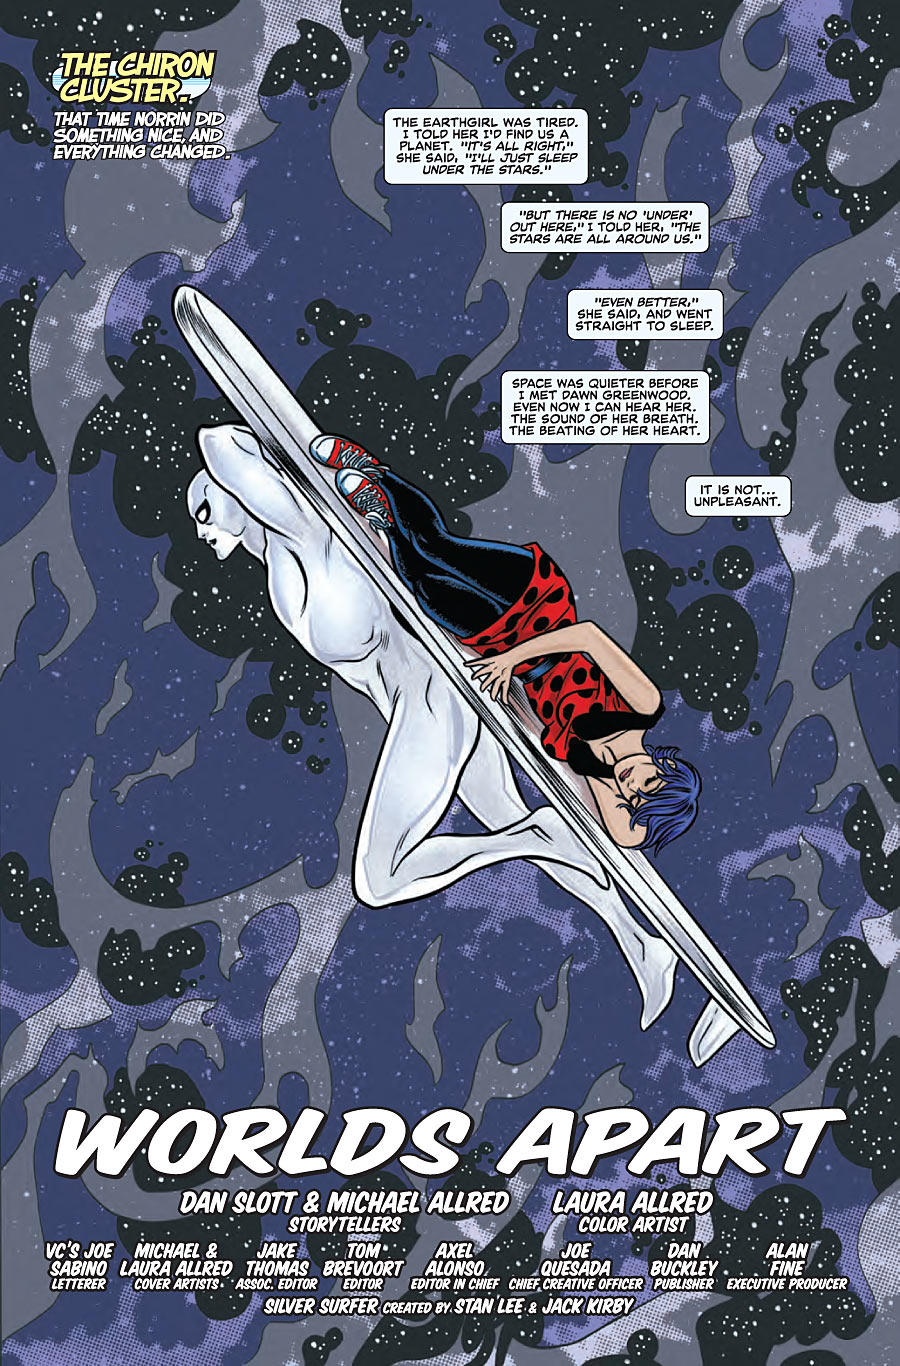 Dan Slott and Mike Allred's  Silver Surfer  is a touching and epic cosmic love story.